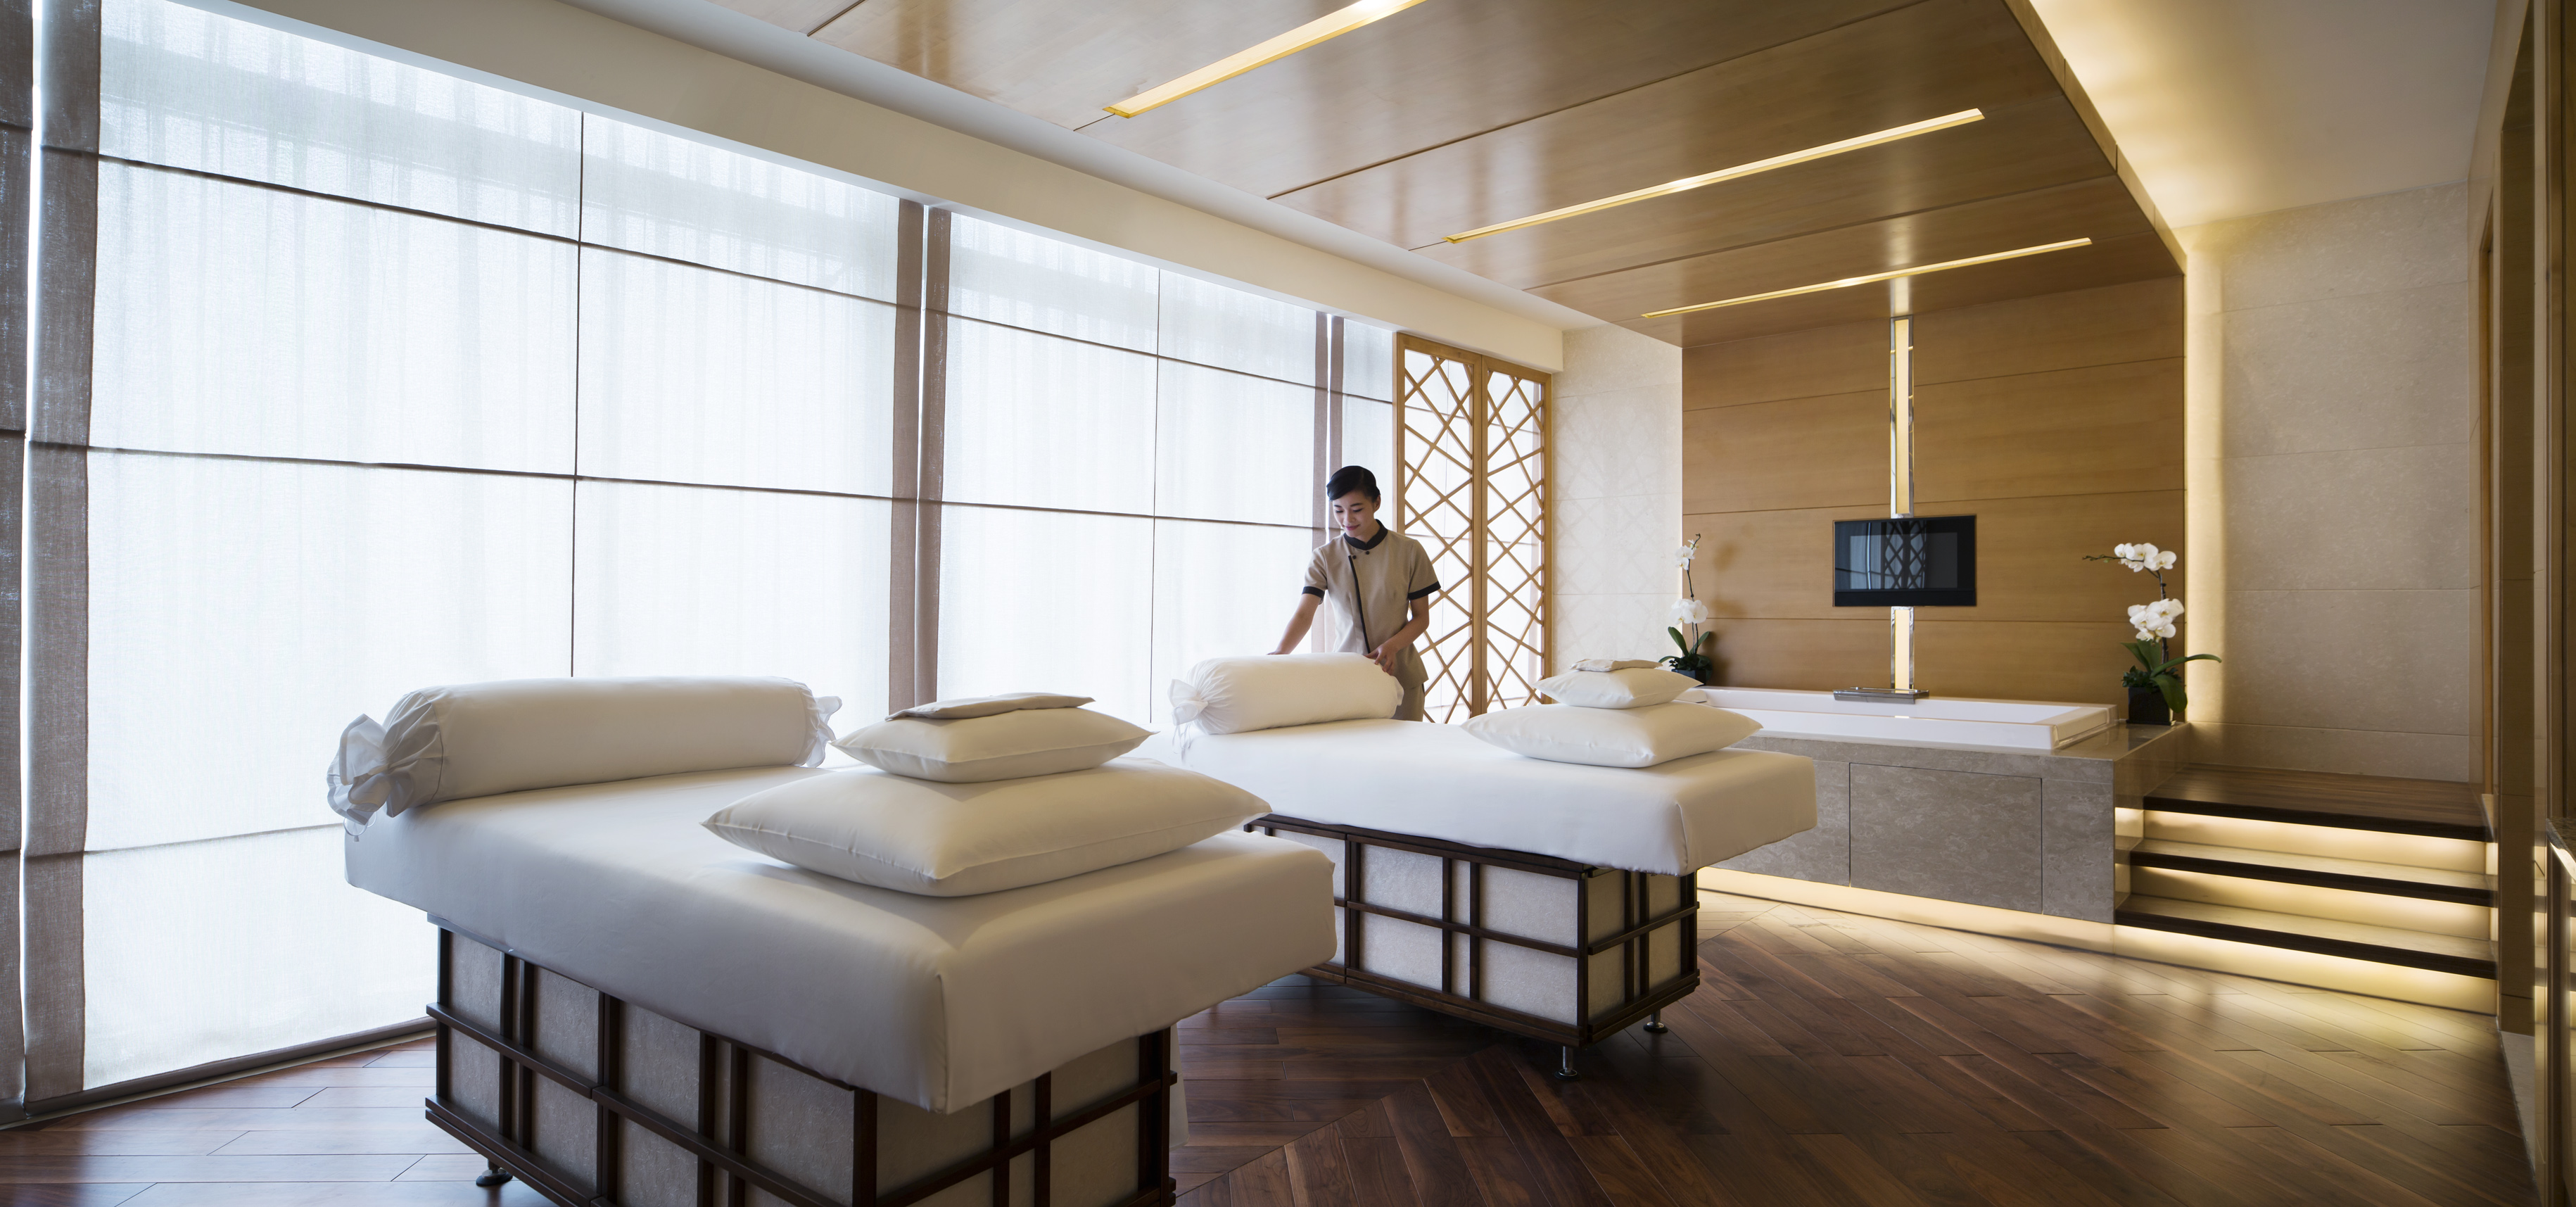 components home the experience spa interior ultimate of design hotel spotlight